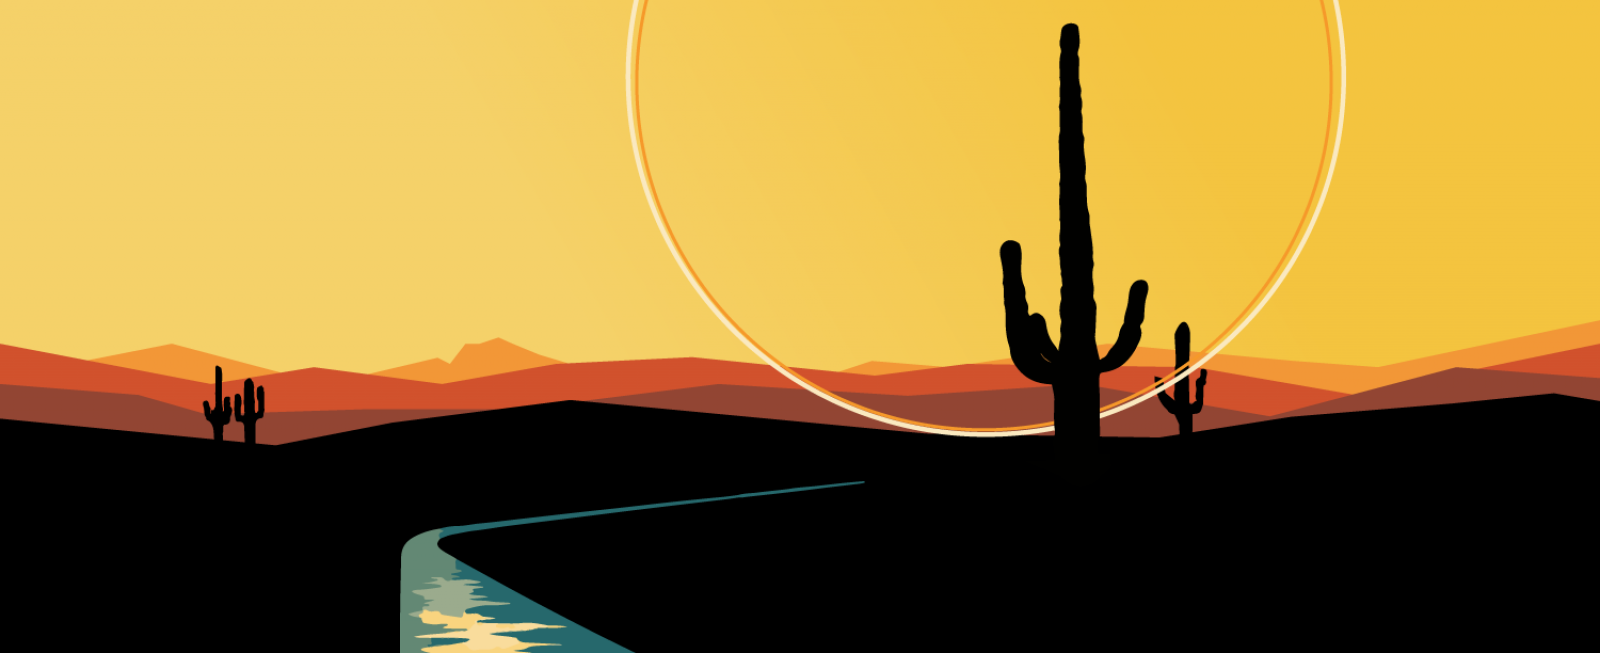 A graphic depicting a Saguaro cactus against a yellow background with a river flowing nearby